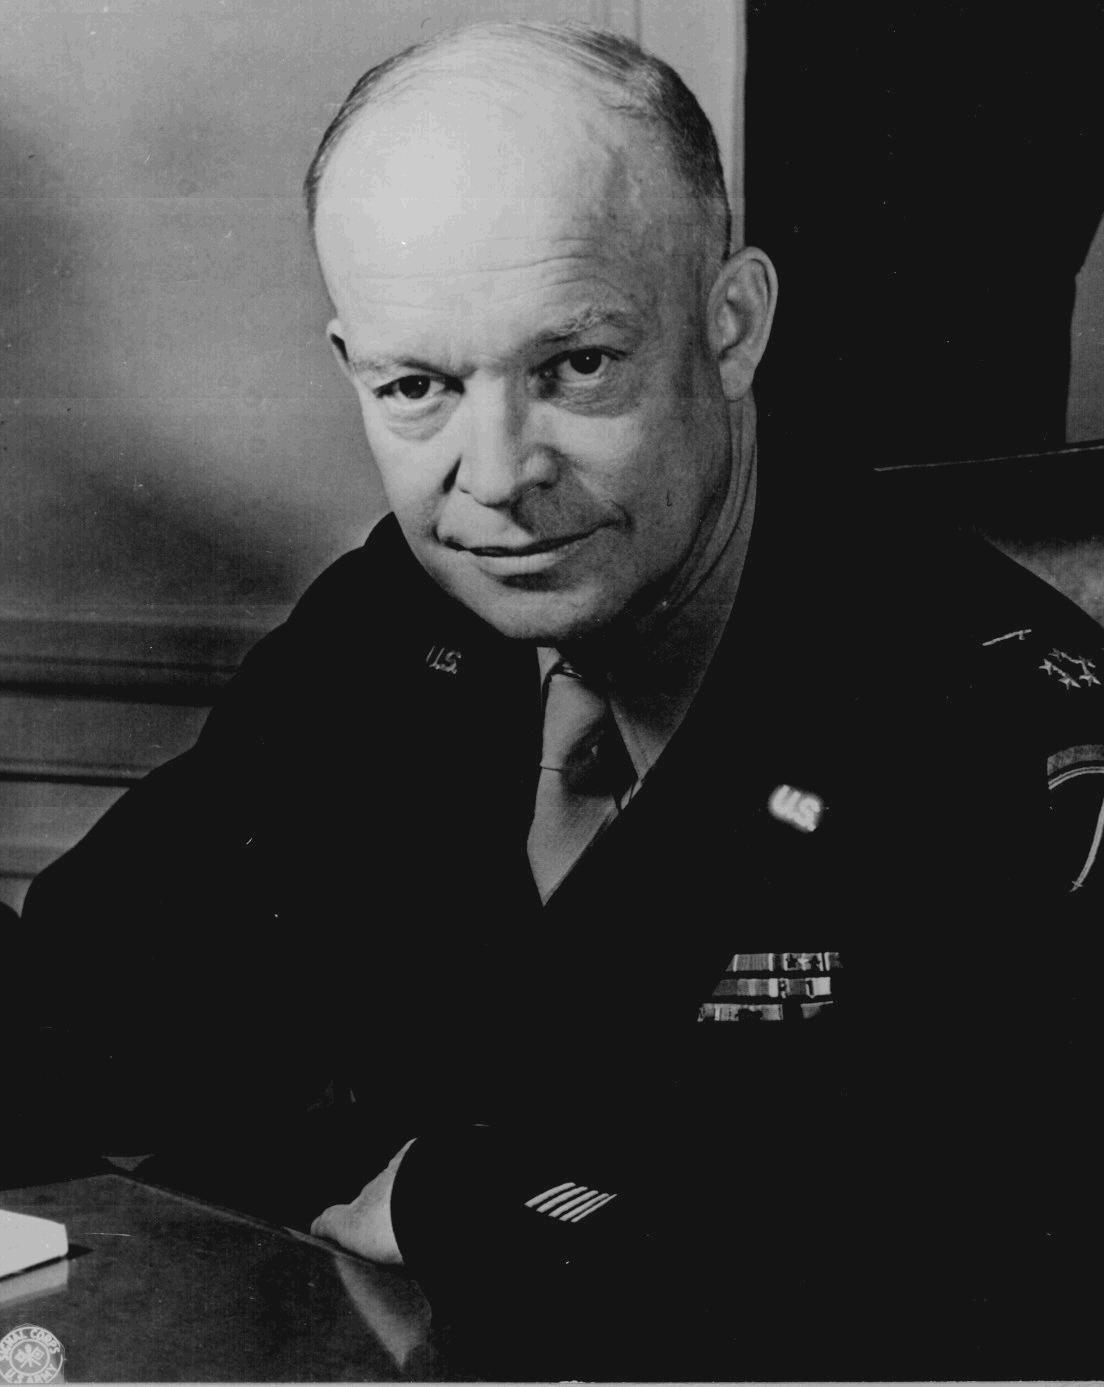 General Dwight David Eisenhower